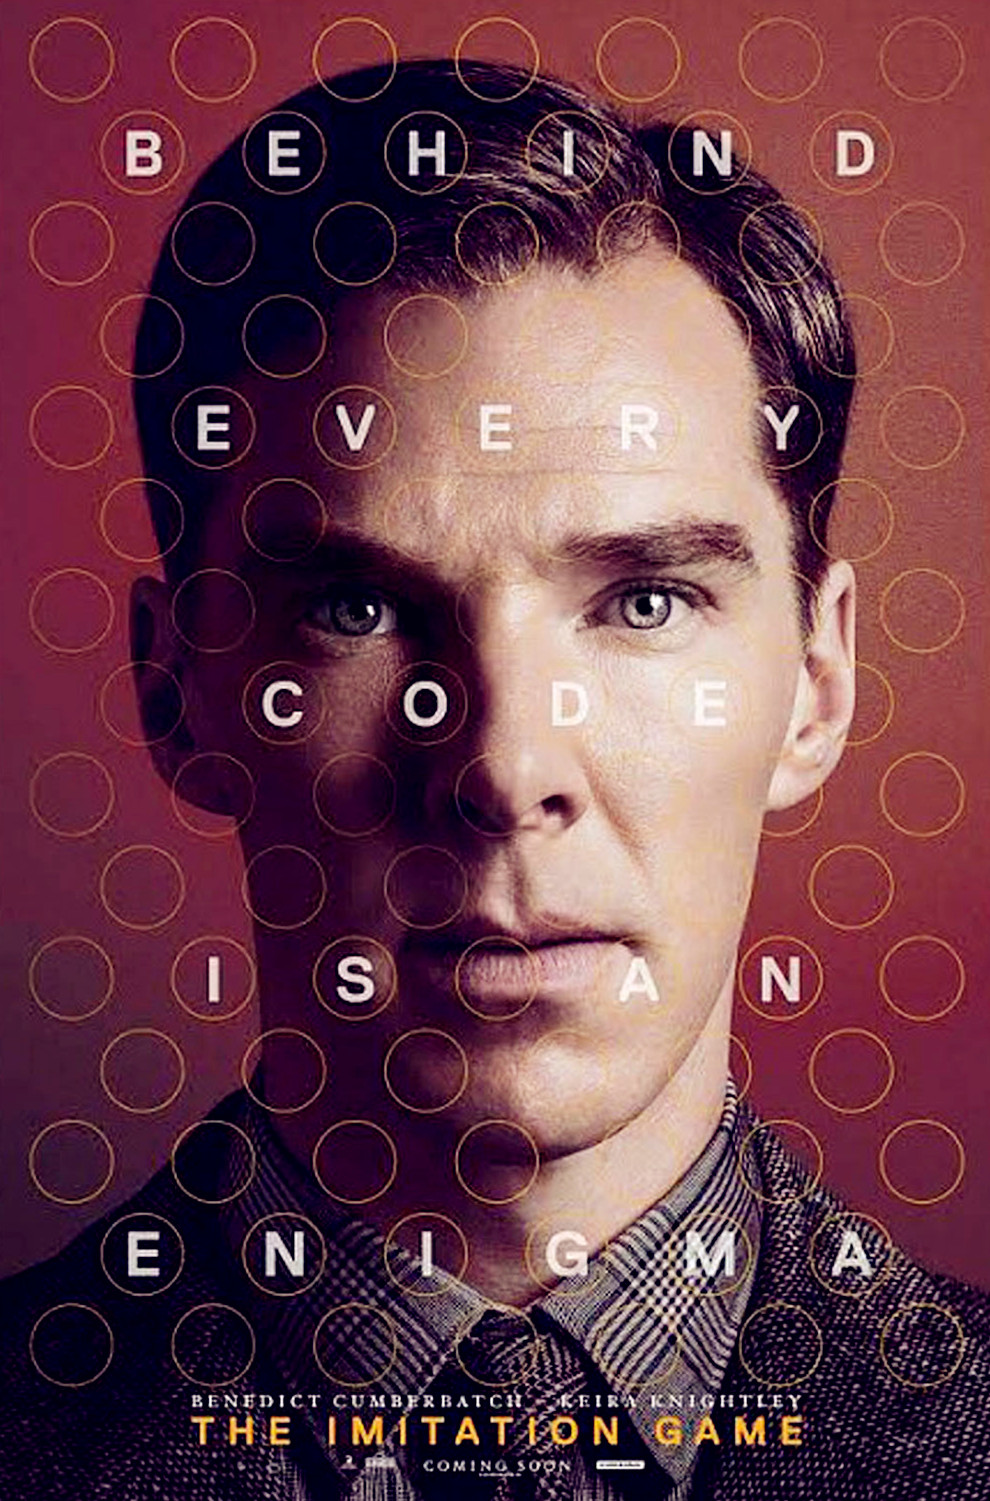 Sinopsis Film The Imitation Game (Benedict Cumberbatch, Keira Knightley, Mark Strong)